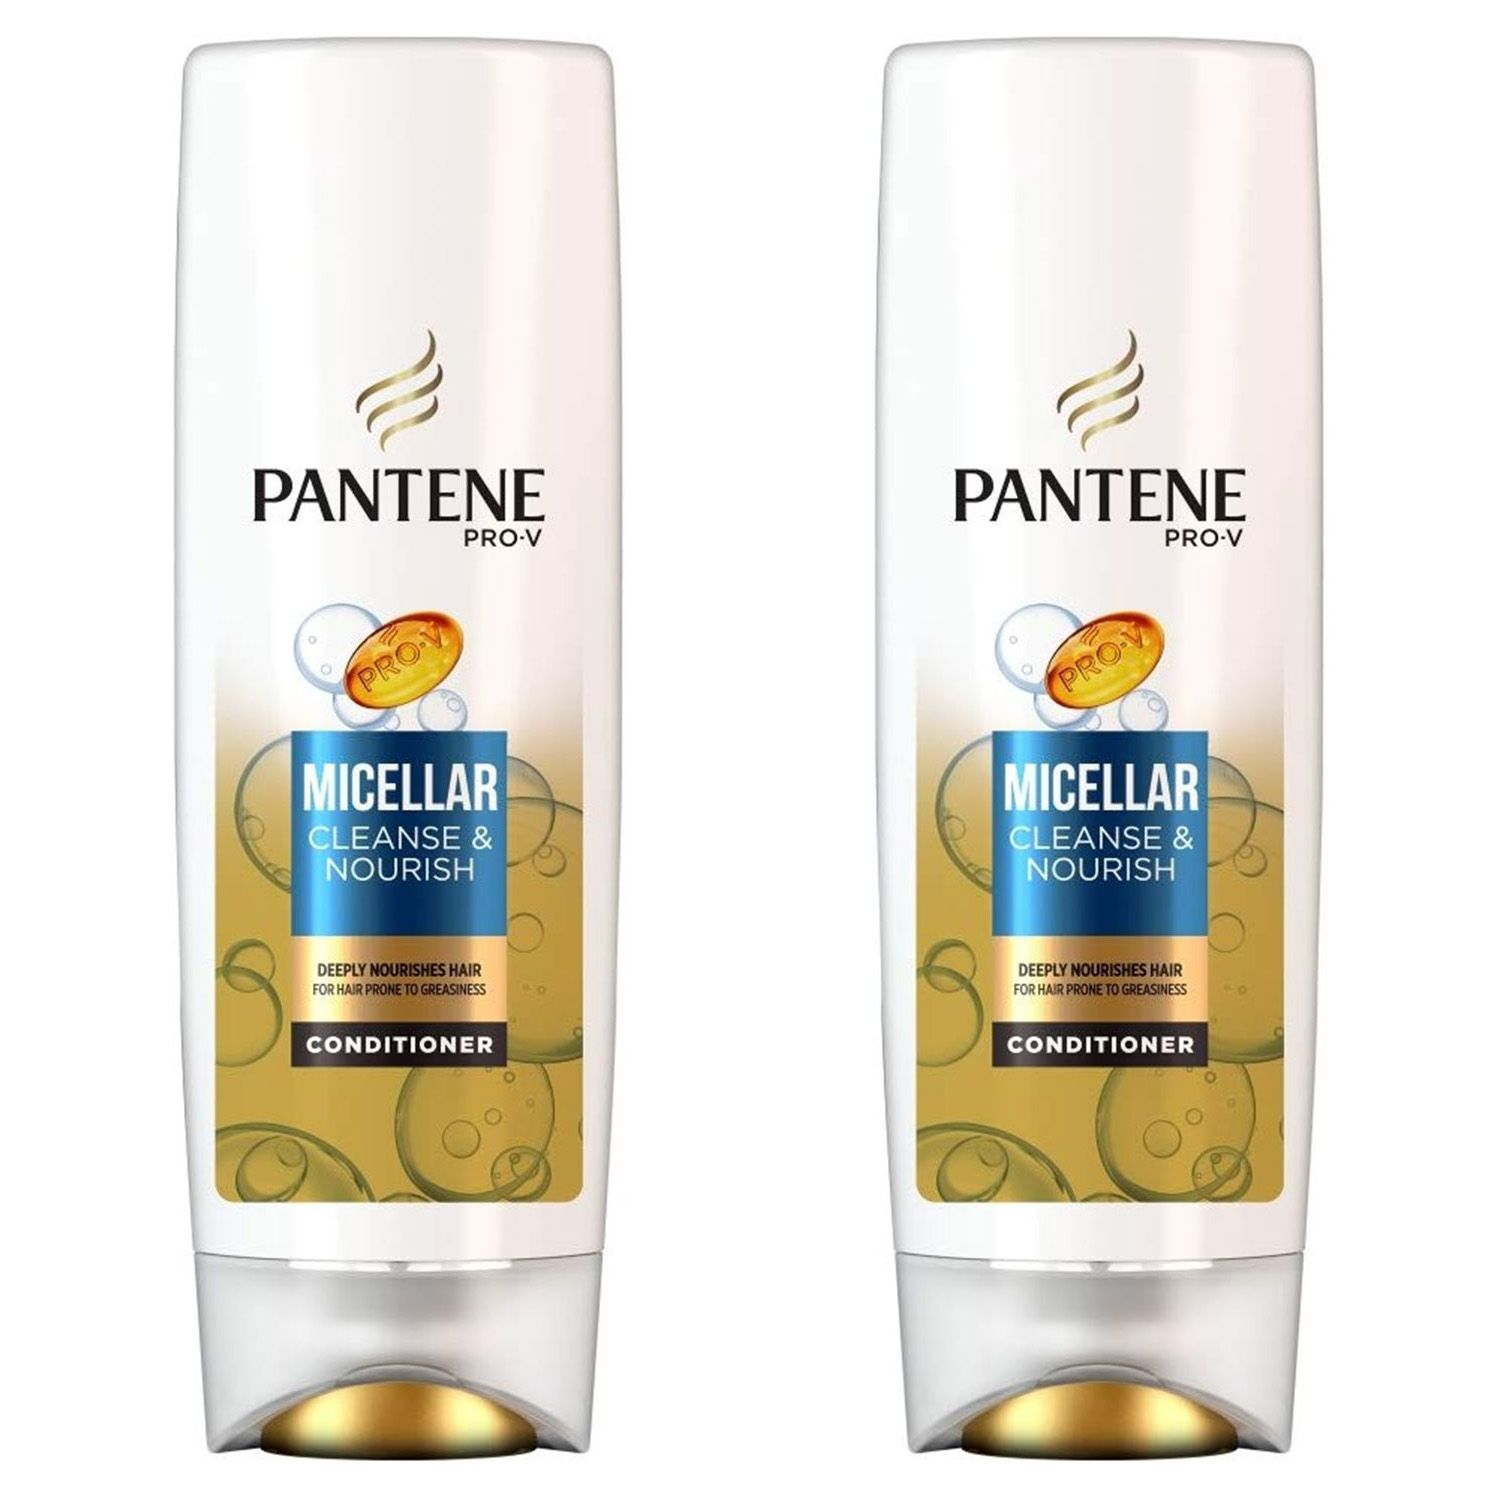 Pantene Conditioner Cleanse and Nourish 2 x 500ml